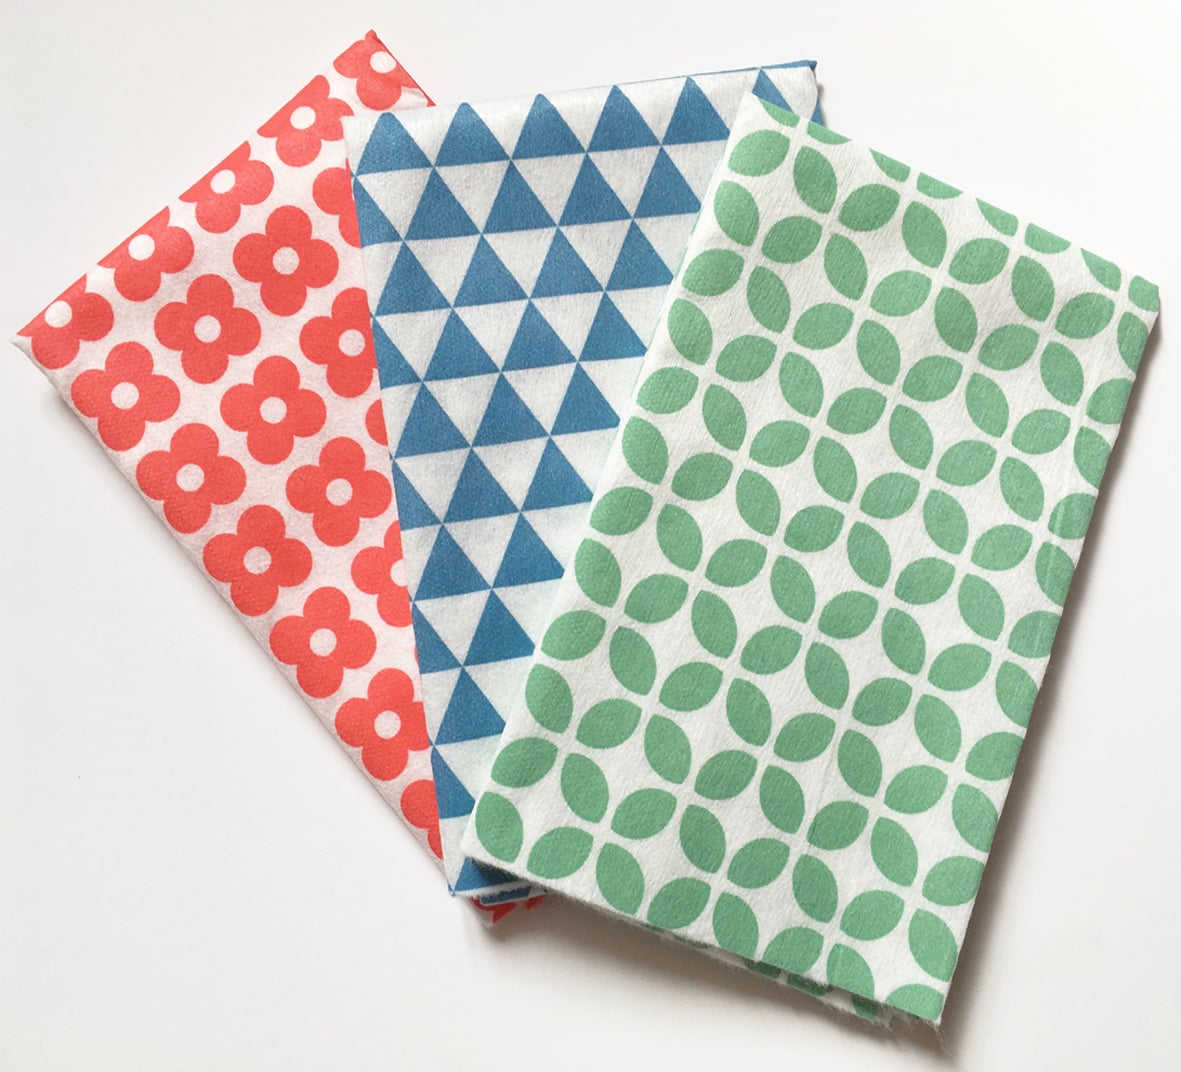 Image of Mixed Pattern Ultra Absorbent Cloths - 12 cloths  (4Red + 4Blue + 4Green)